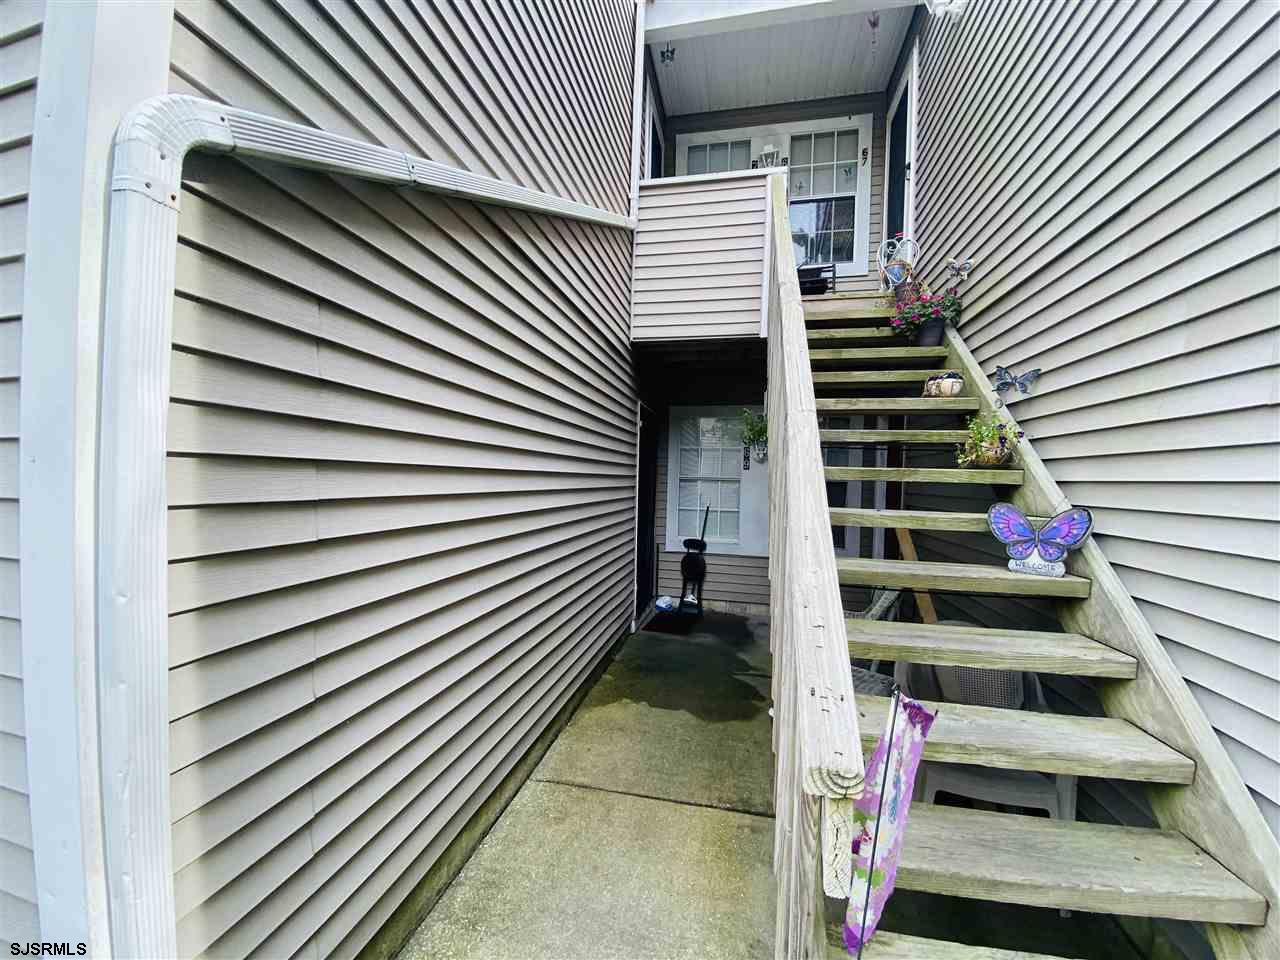 ***SMITHVILLE NEW LISTING ALERT***FOX CHASE 1ST FLOOR 1 BED 1 BATH***NICELY MAINTAINED***GAS HEAT***